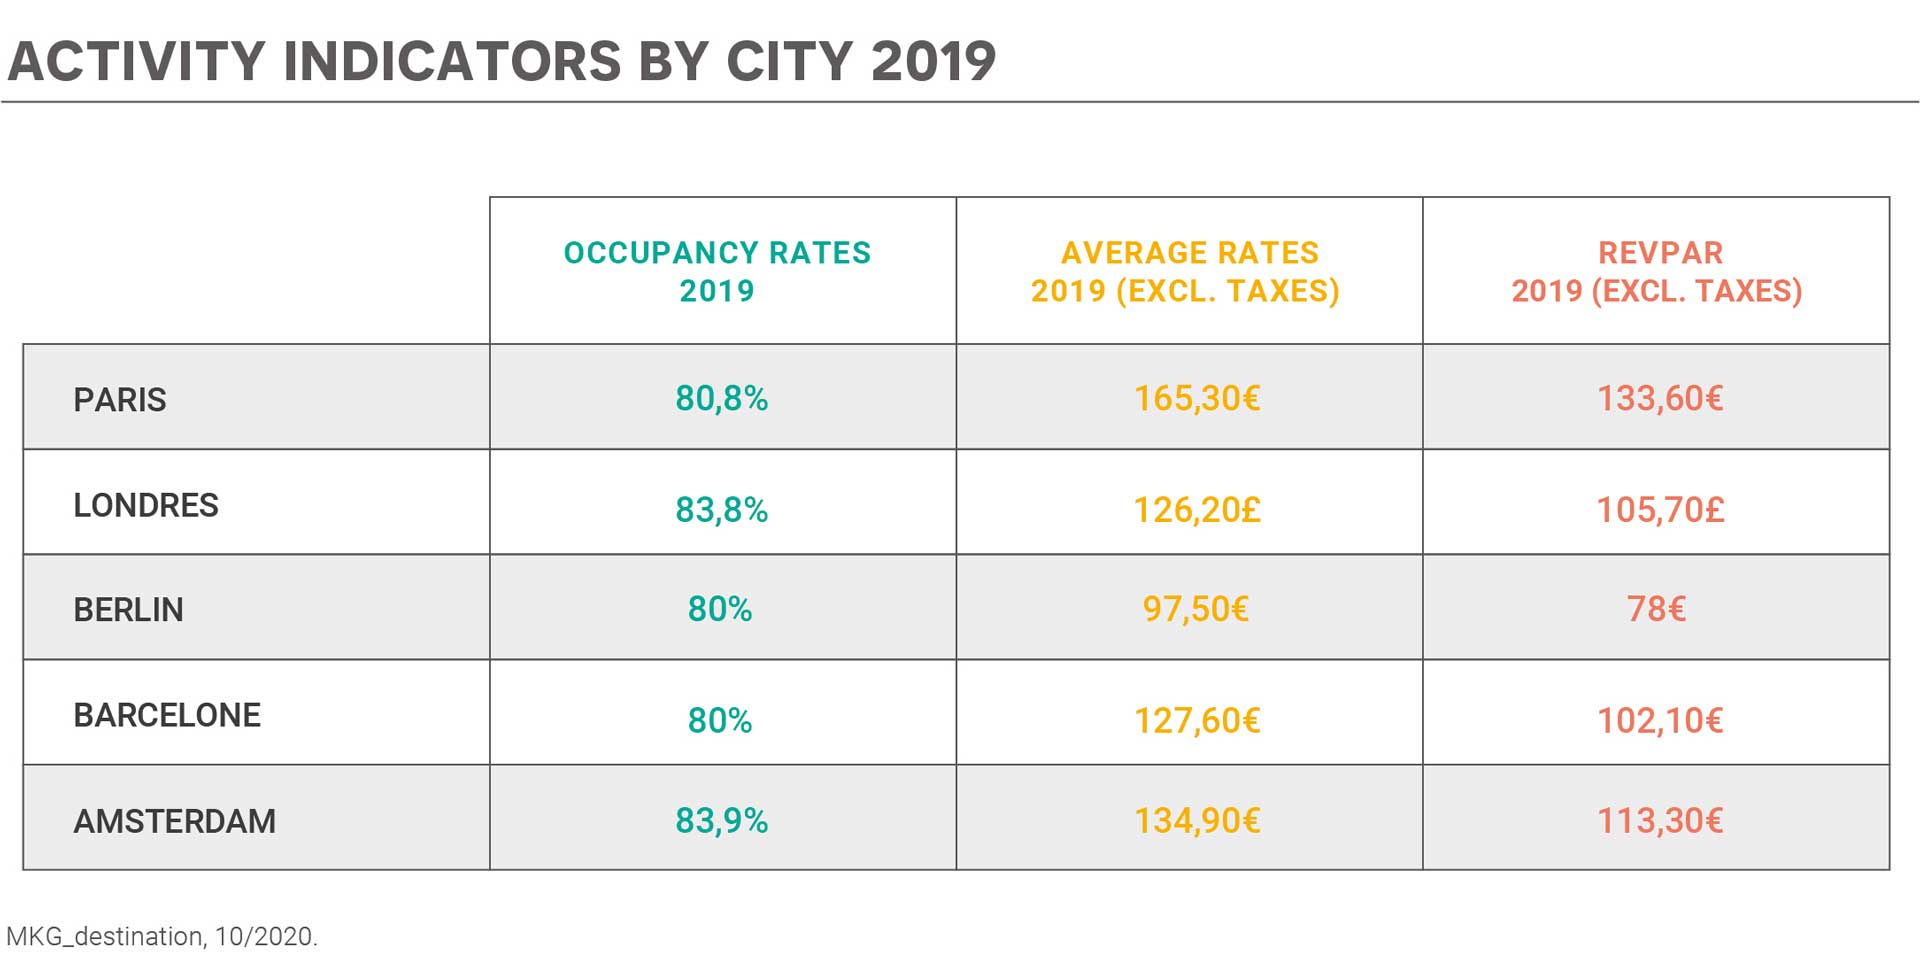 Activity Indicators by City 2019